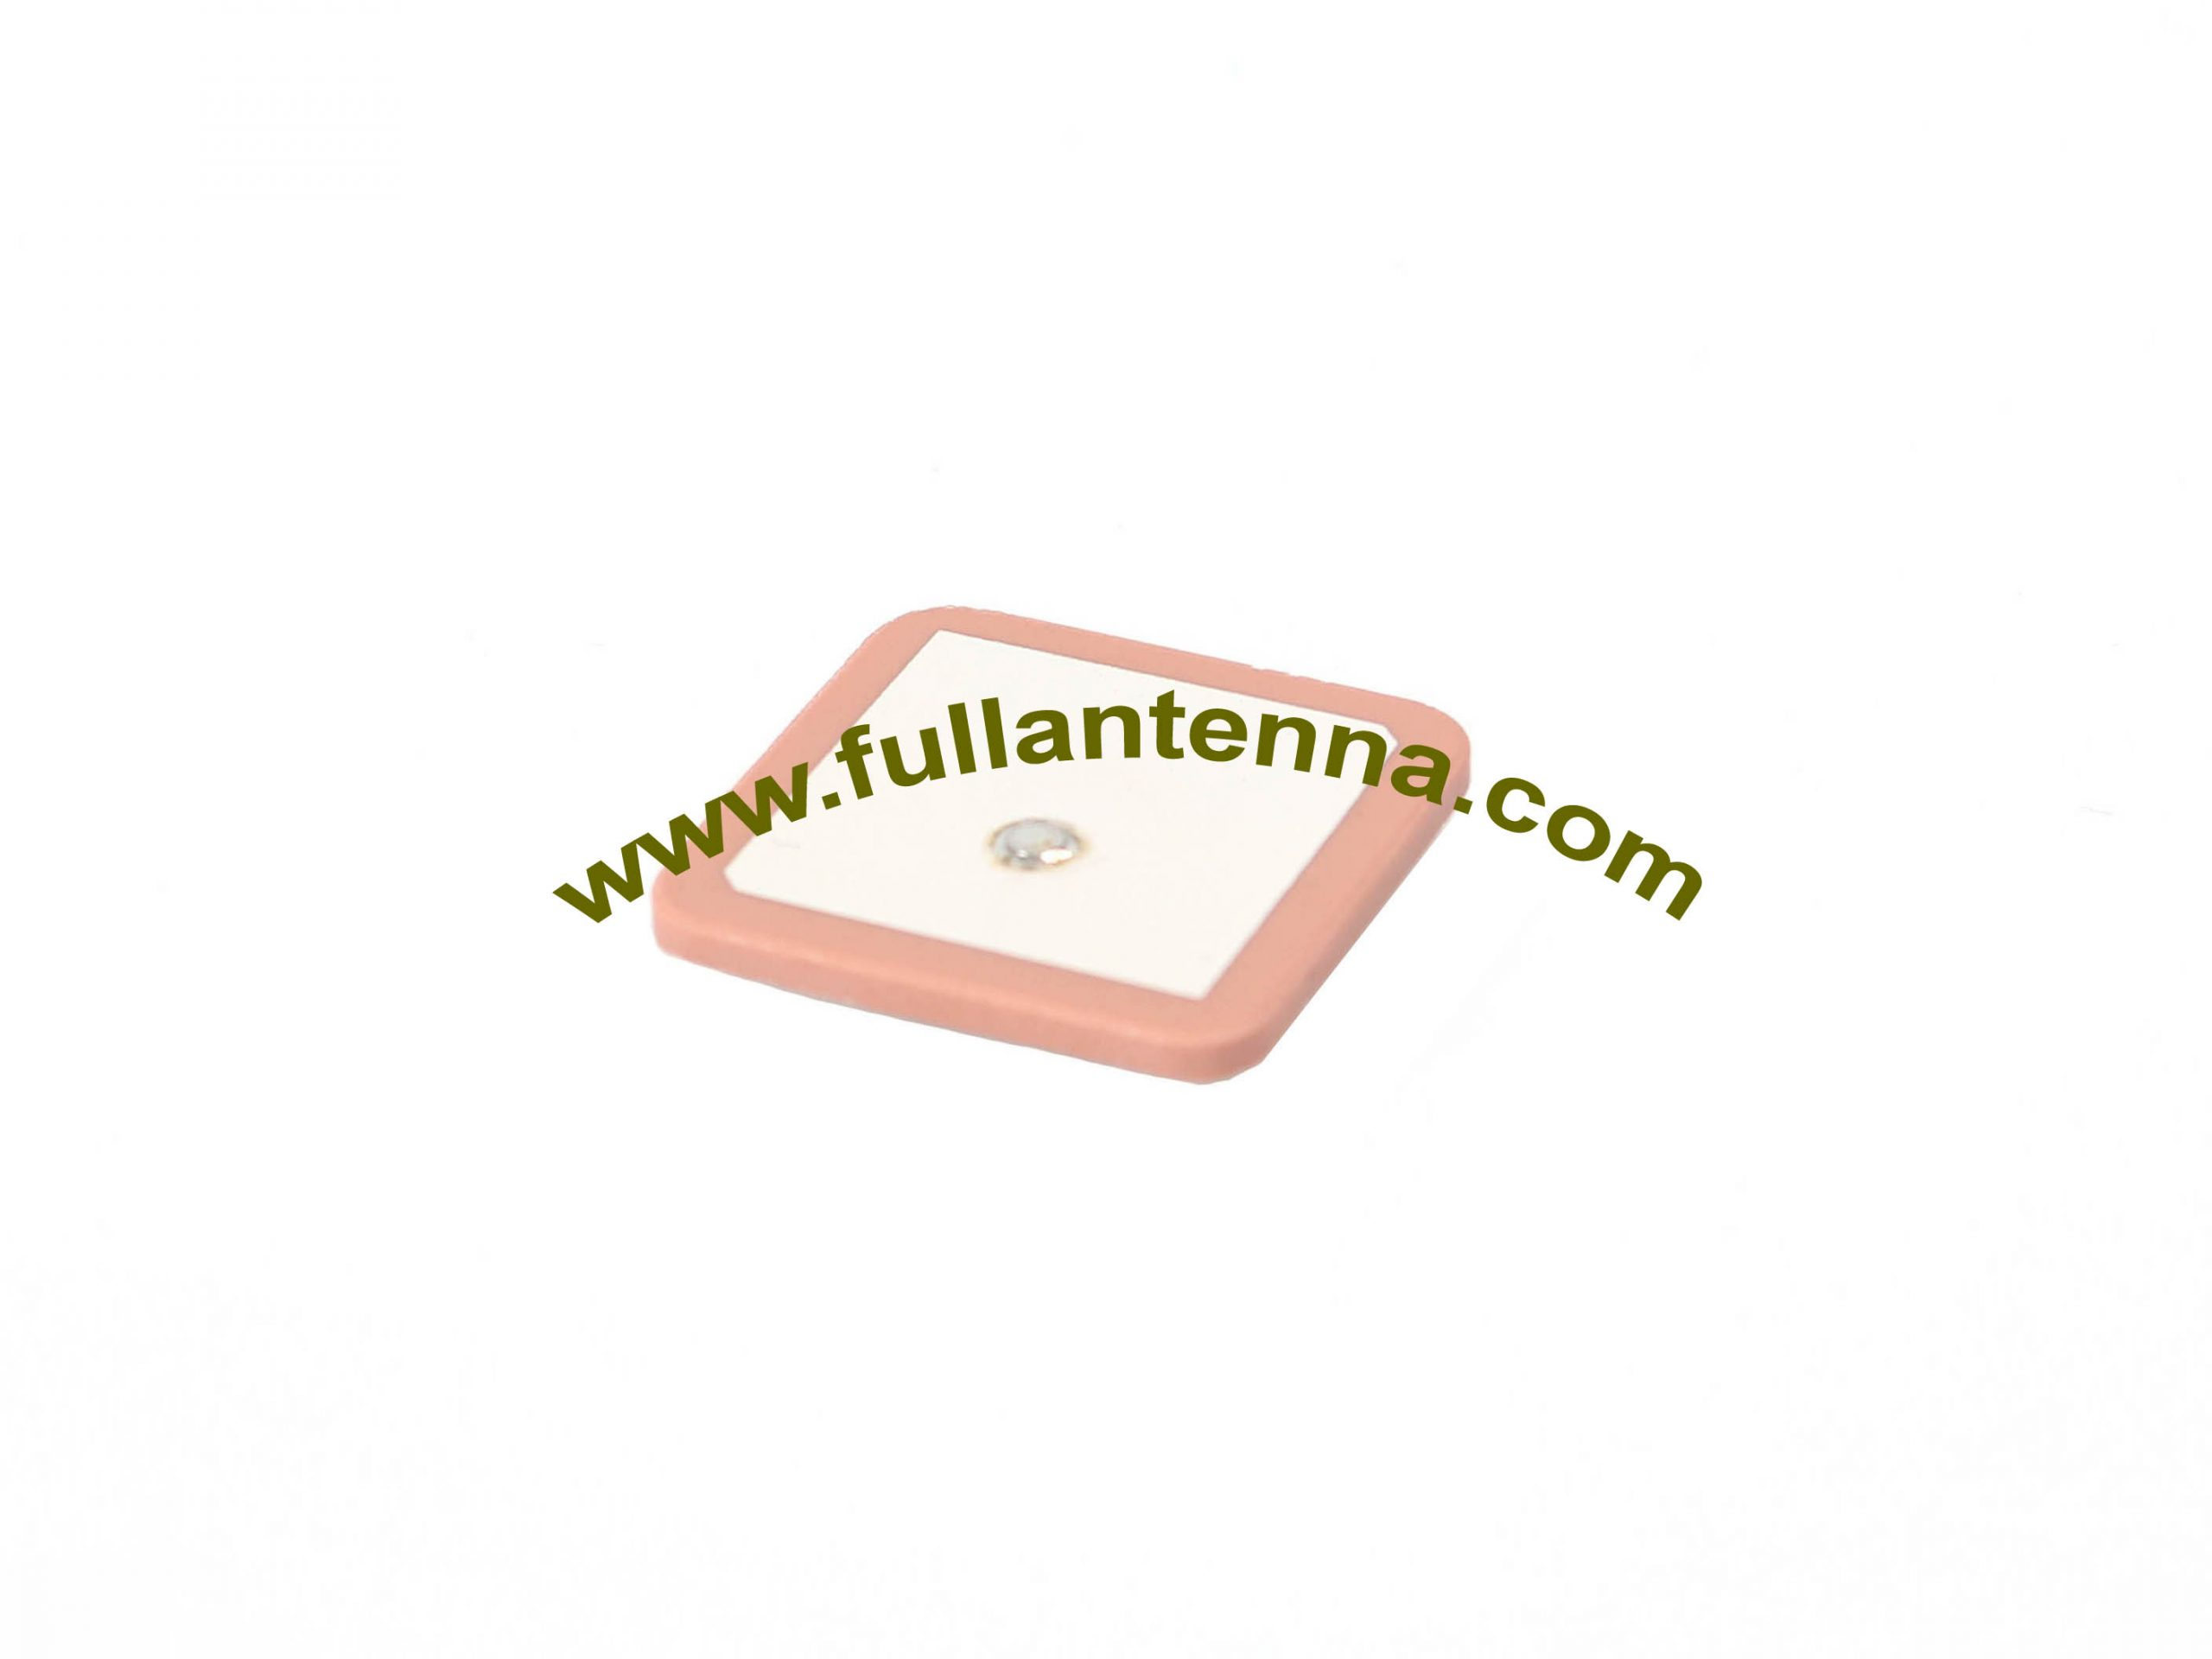 P/N:FAGPSGlonass.252,Glonass Dielectric Antenna,GNSS patch antenna 25x25x2mm size with Pin